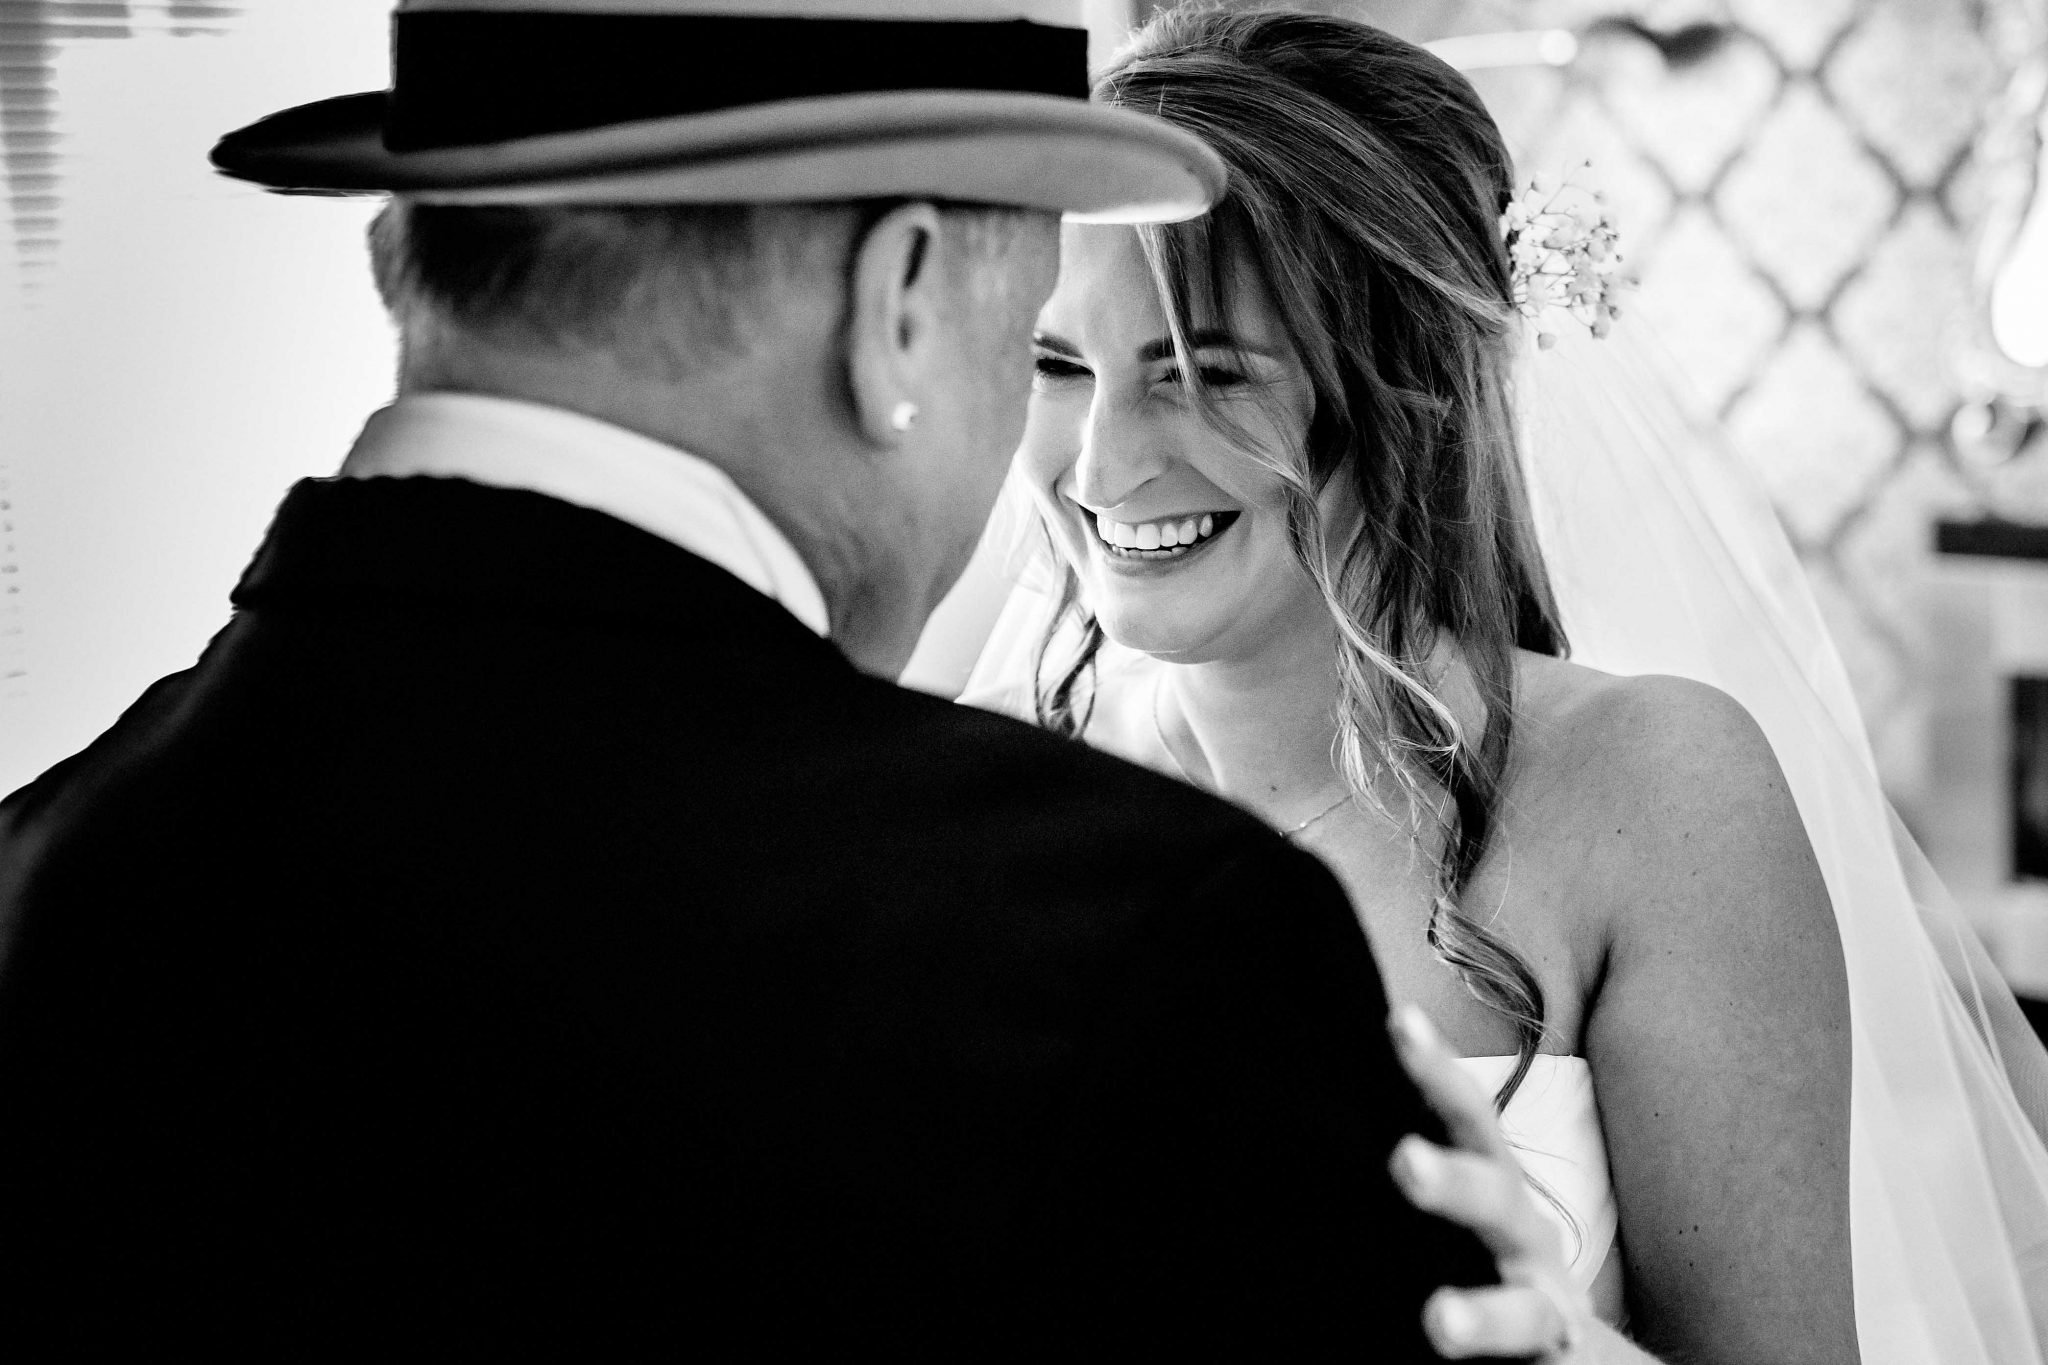 36 Astley Bank Hotel Bolton wedding Photography – Photographed by Ollie Gyte Photography